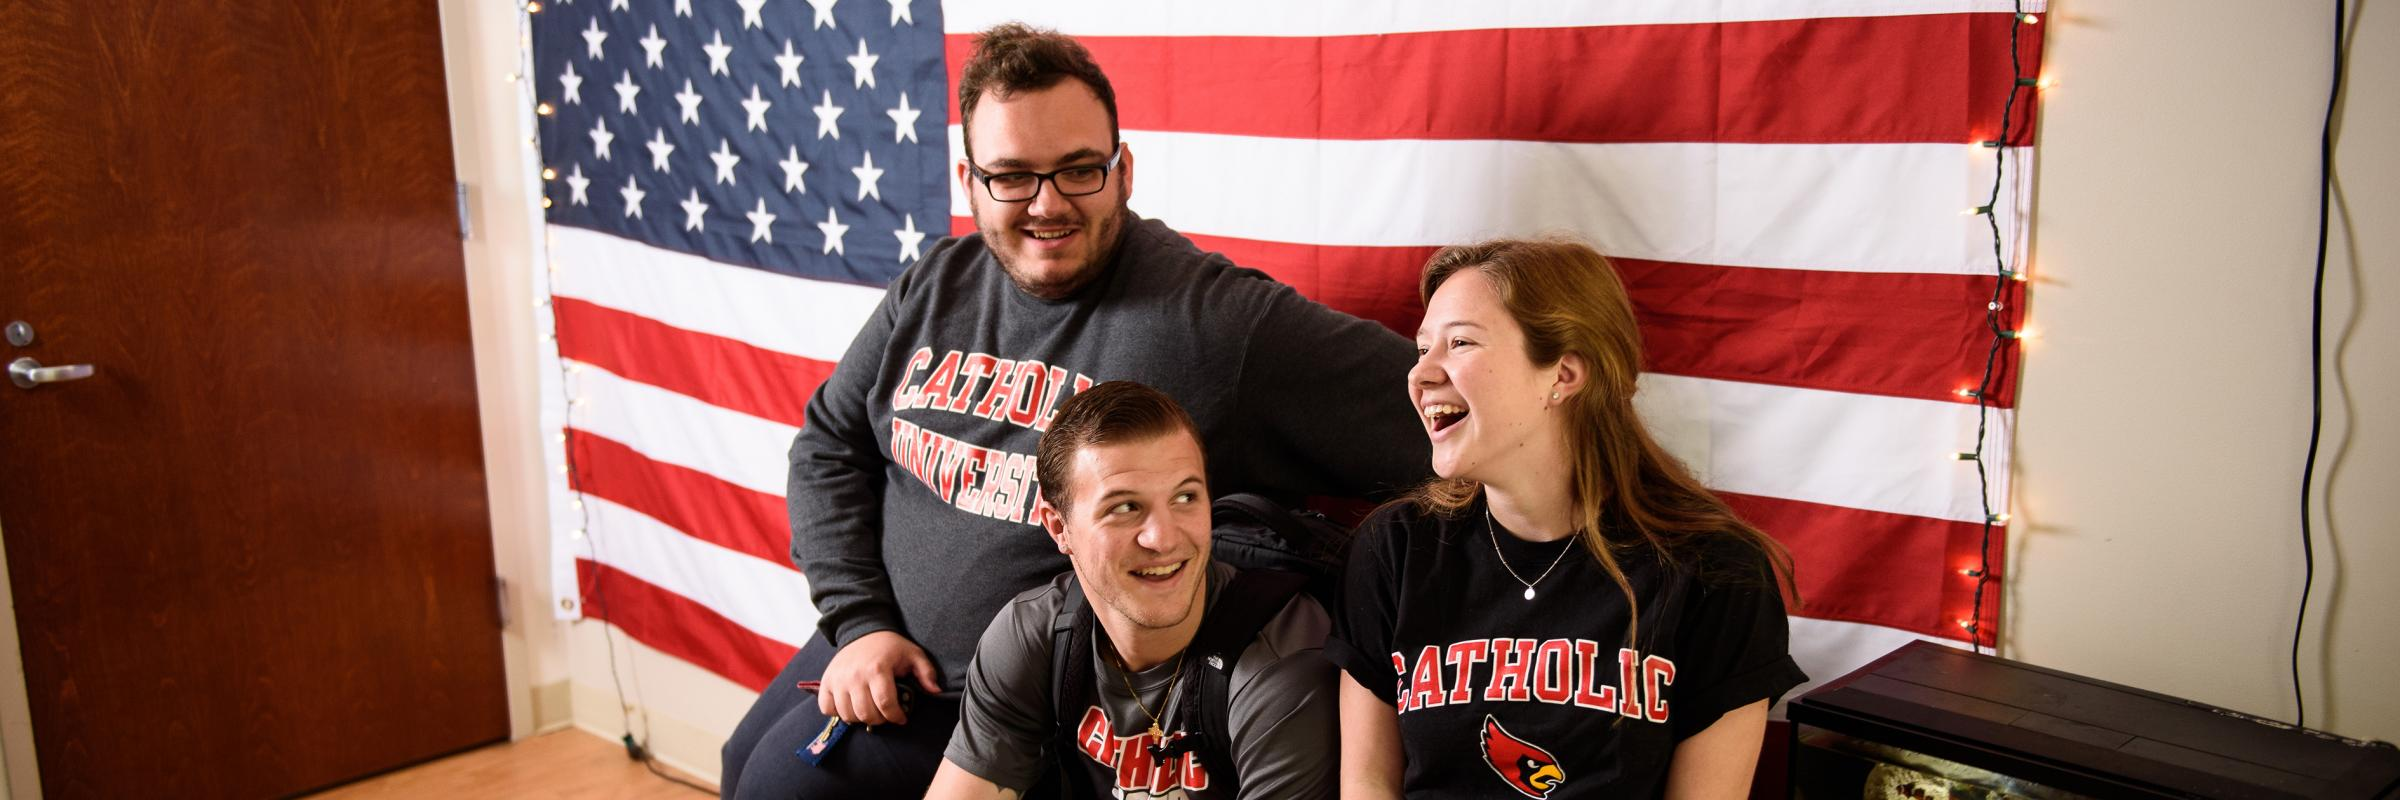 Students smiling in a dorm with a U.S. flag behind them